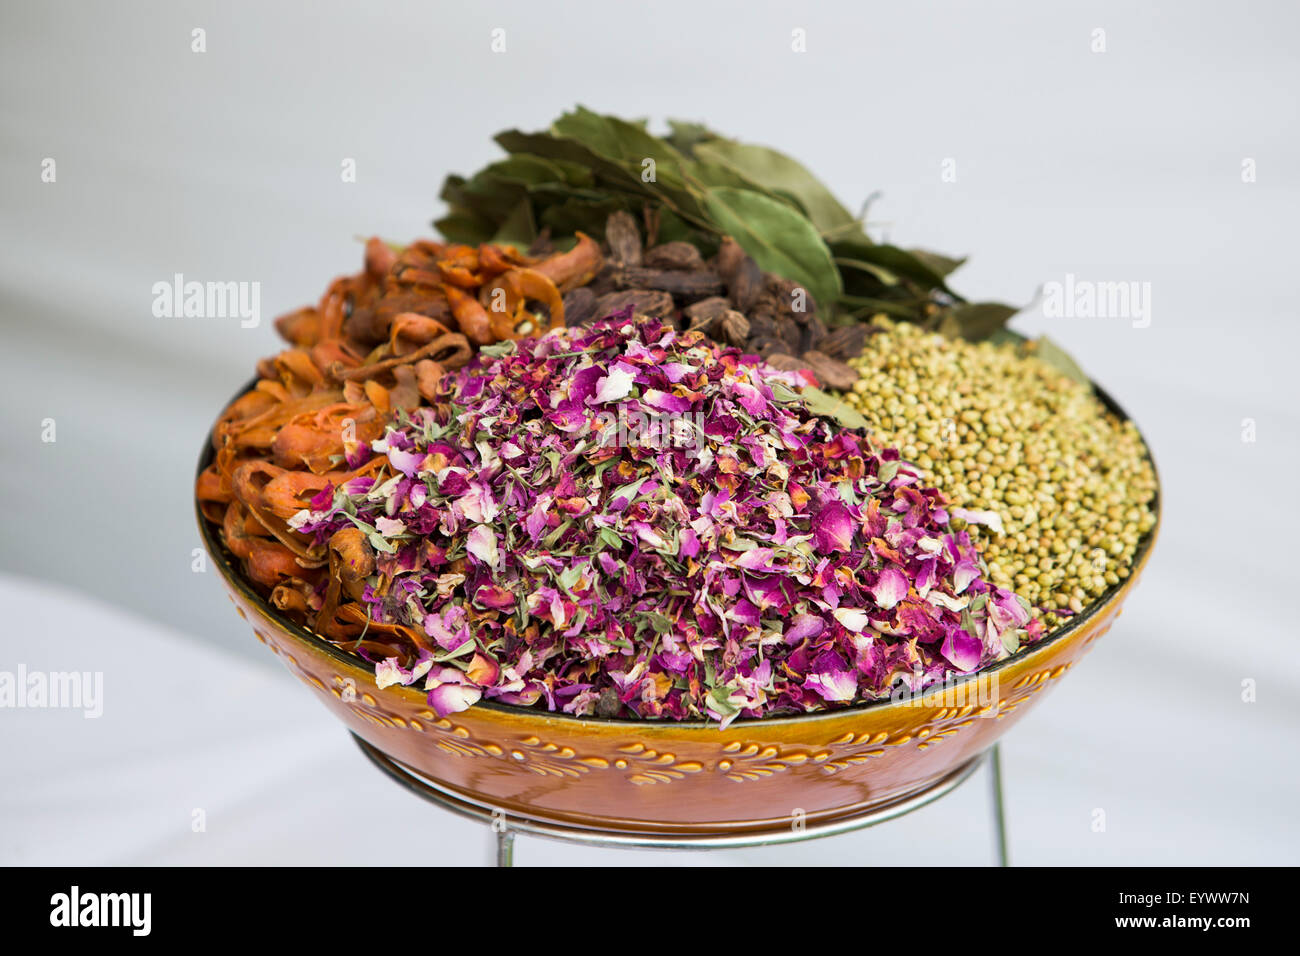 A bowl of spices and herbs used in Indian cookery including